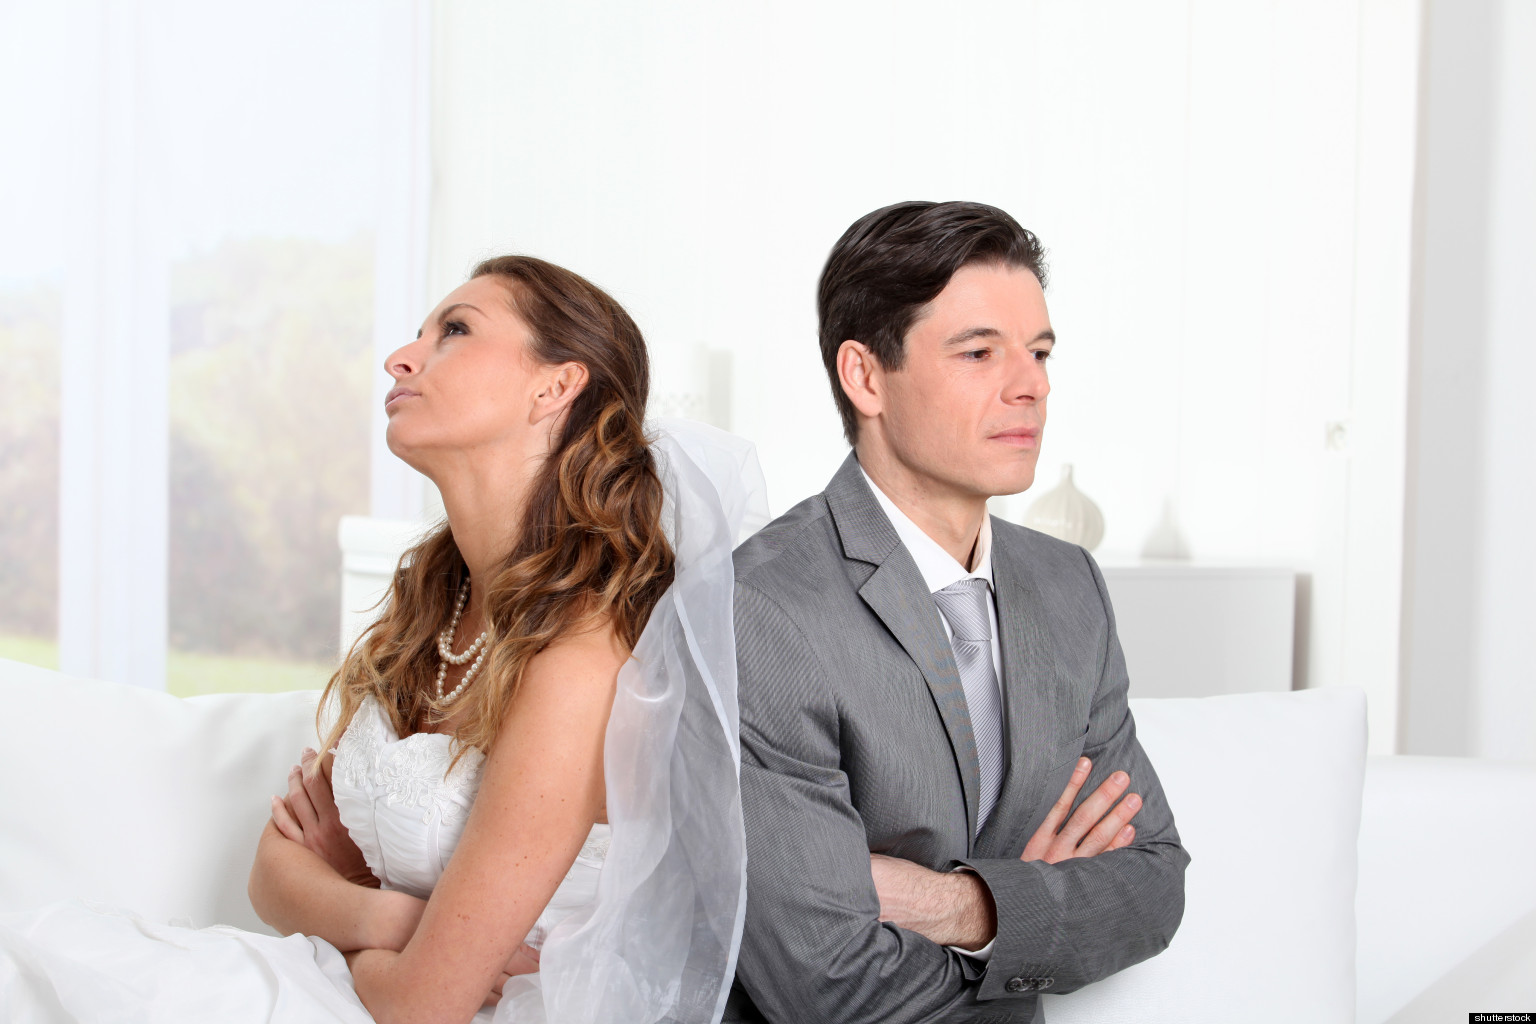 marriage and divorce The prevalence of divorce is evidence that we need to better understand the importance of marriage, the selflessness it requires, and the joys it can bring.